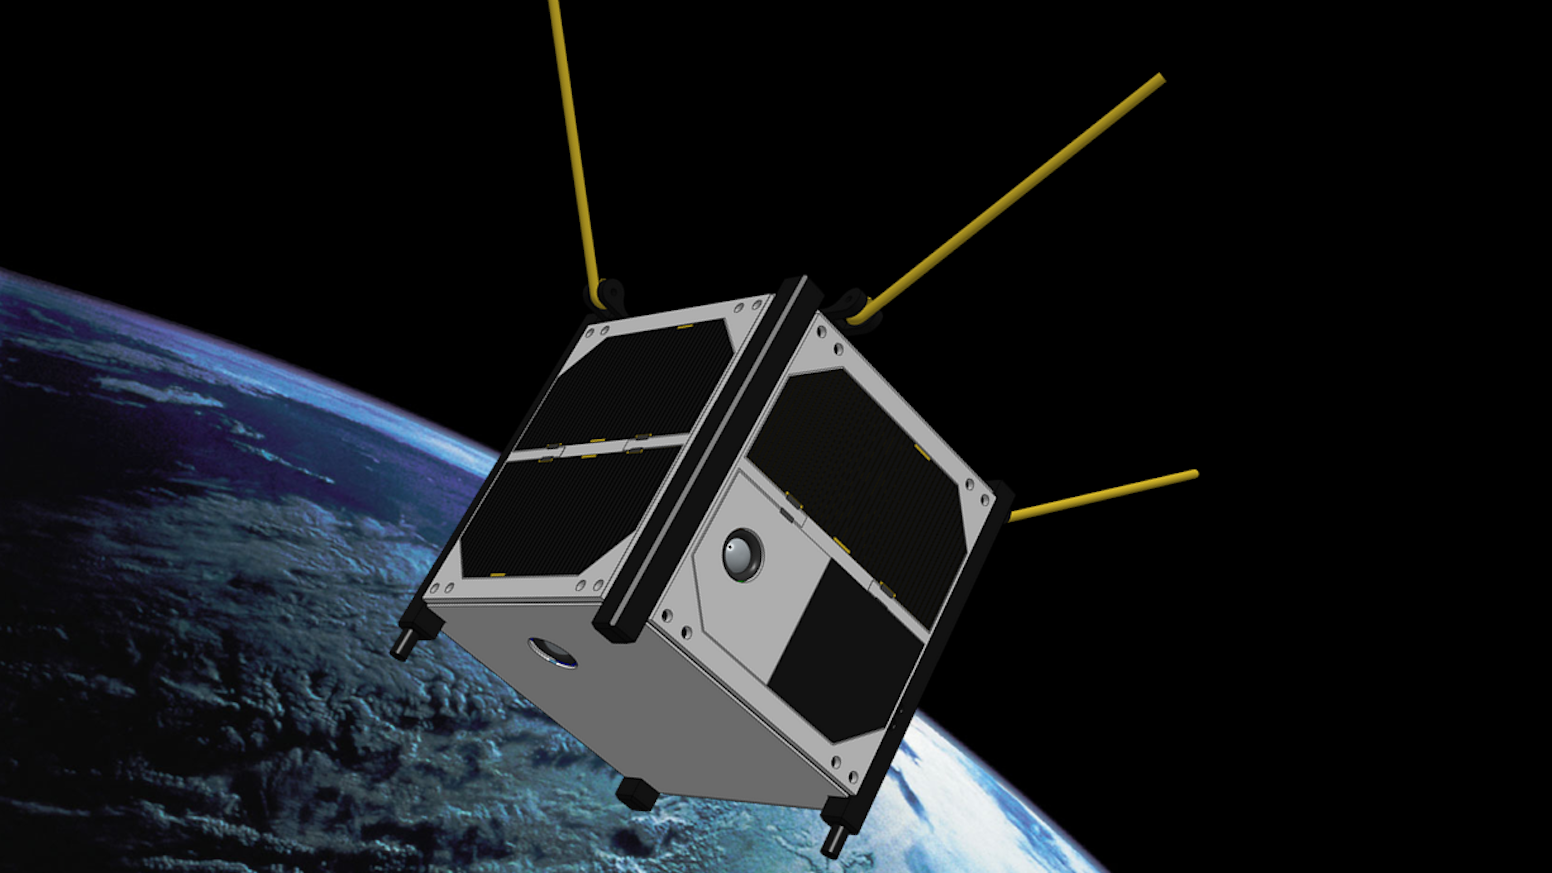 Ardusat Your Arduino Experiment In Space By Ppl4world Kickstarter Power Over Ethernet For Freetronics